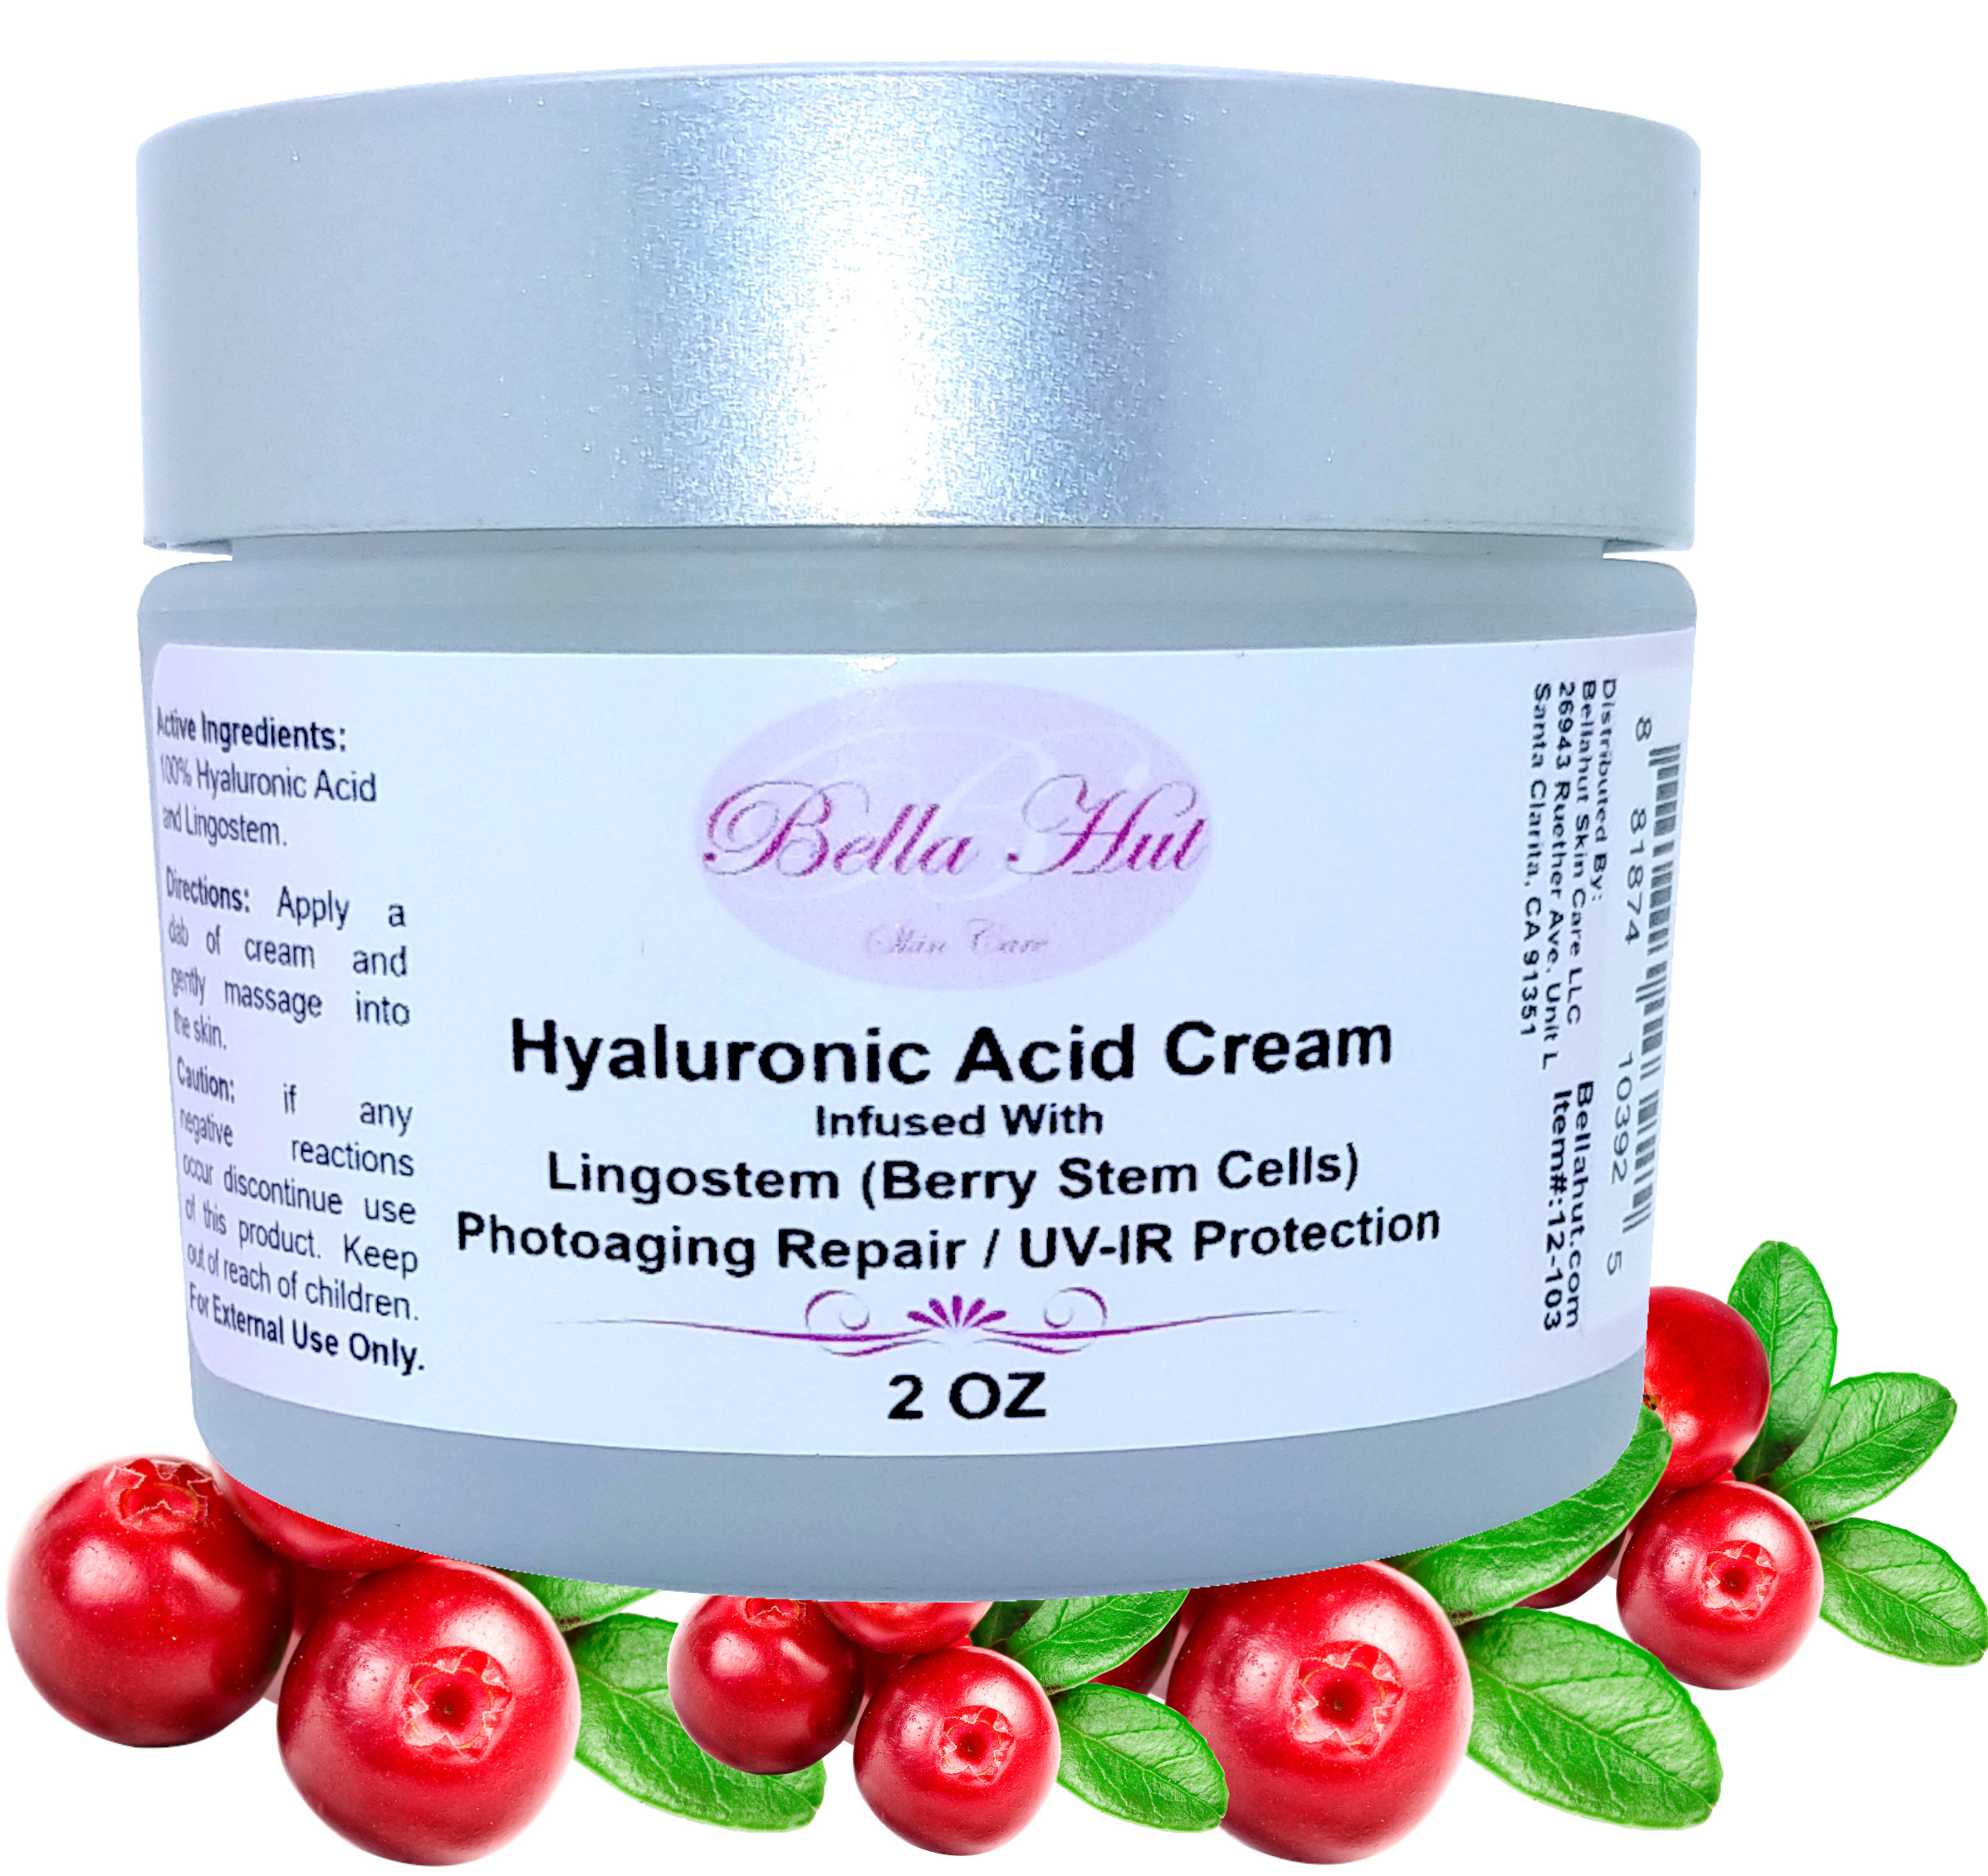 100% Hyaluronic Acid Cream WITH Lingostem Peptide